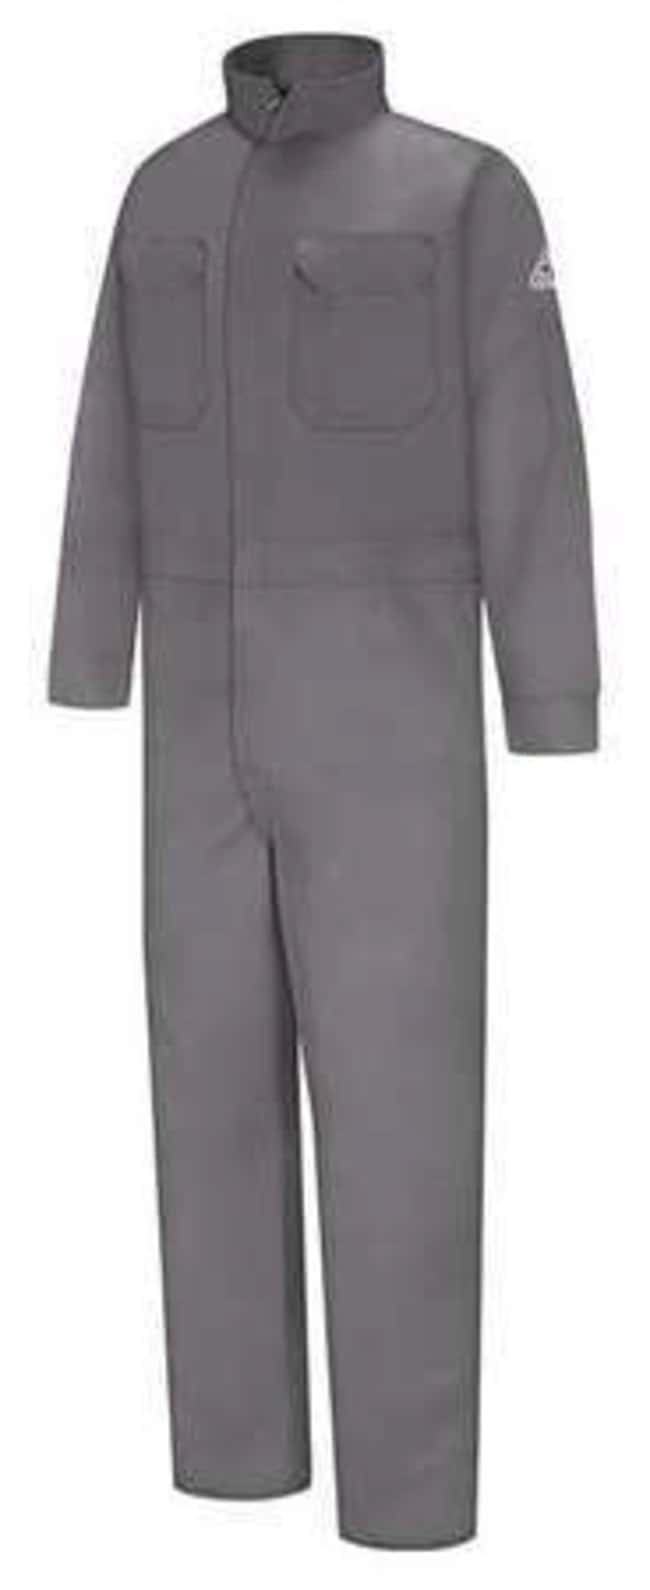 VF Workwear Bulwark EXCEL FR 8-Pocket Deluxe Coveralls Size: 46 in. regular:Gloves,